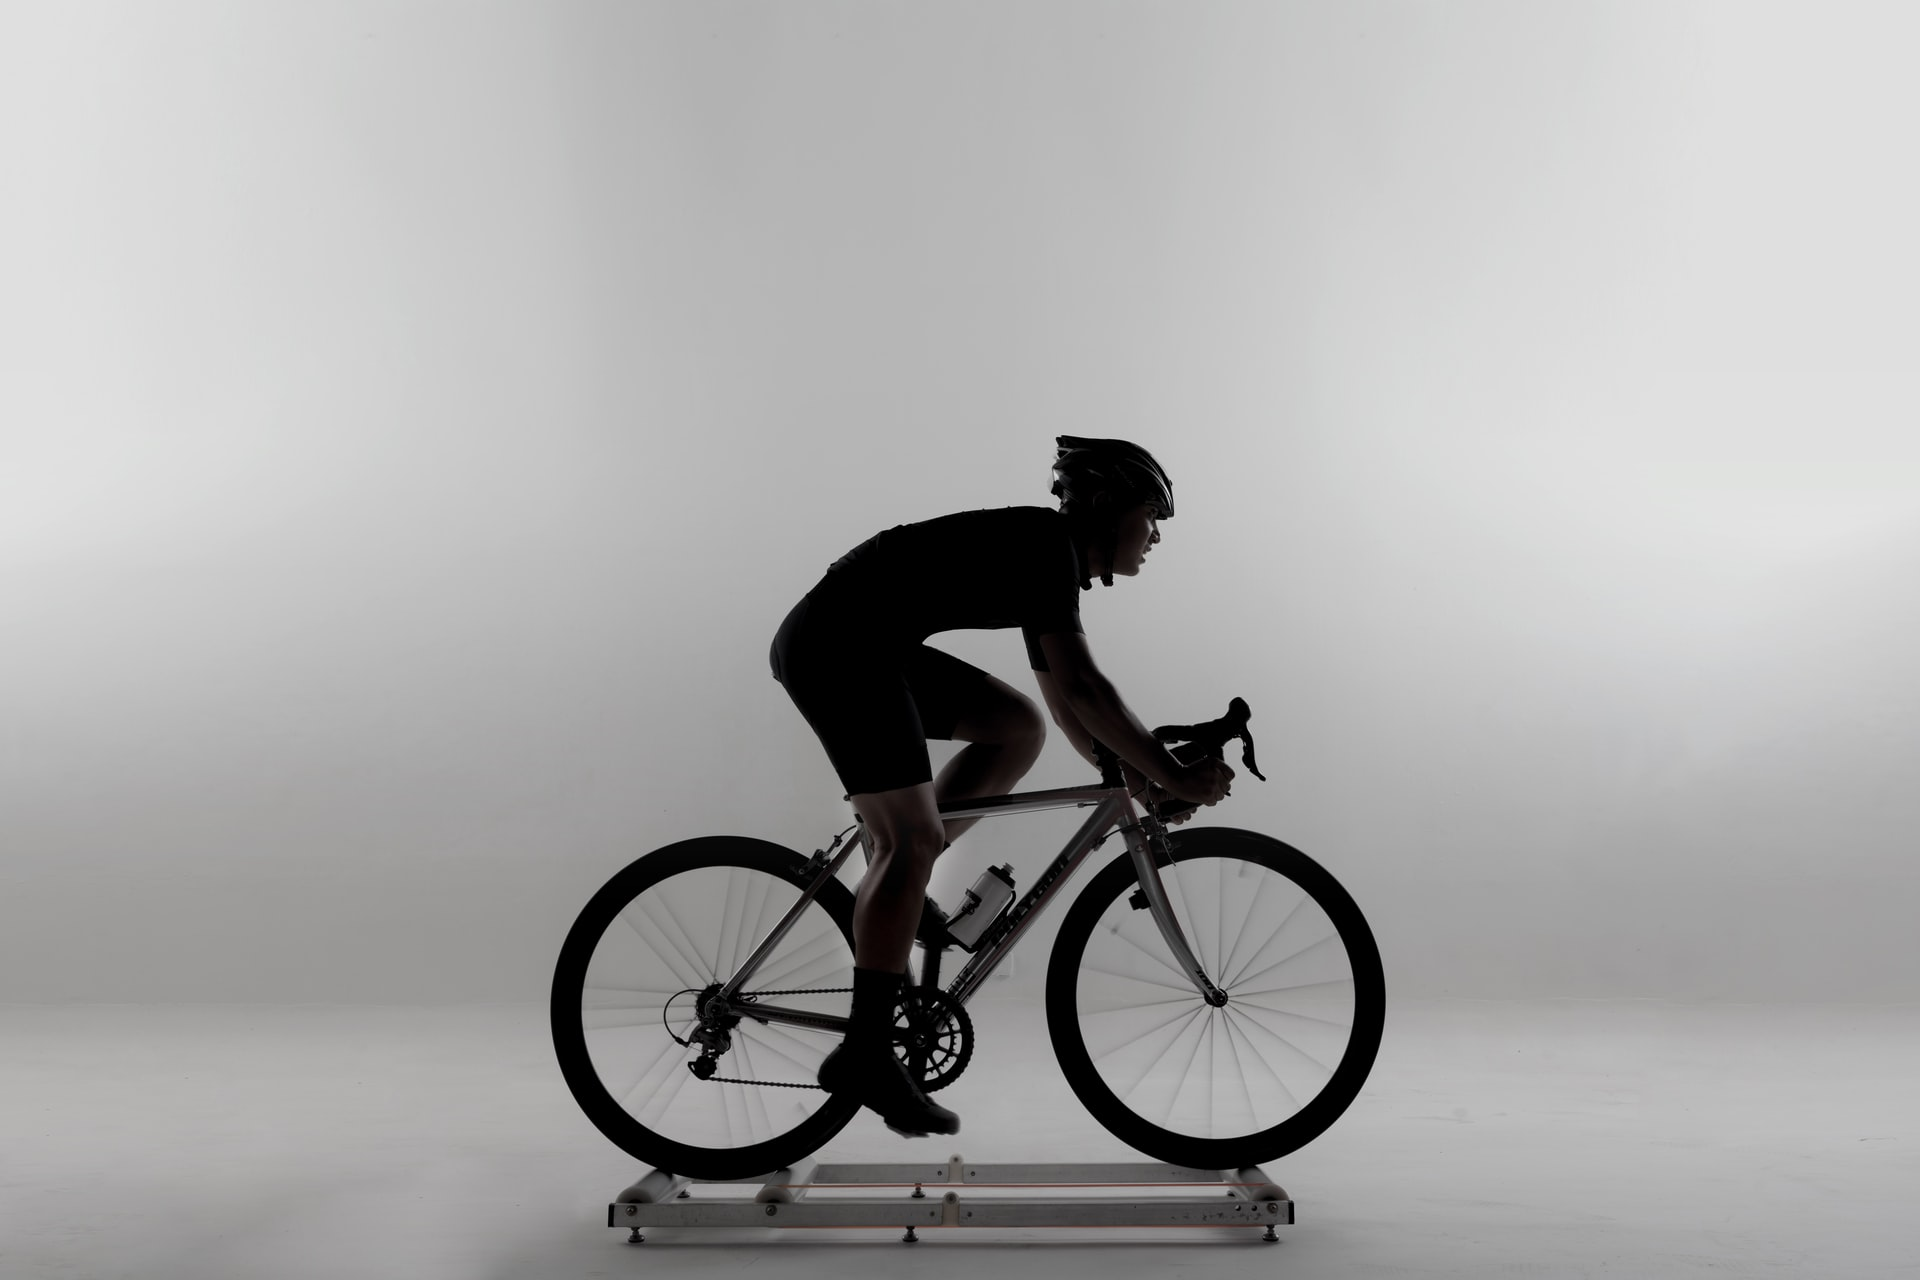 Indoor Training for Cyclists: Efficient or Counter-Productive?